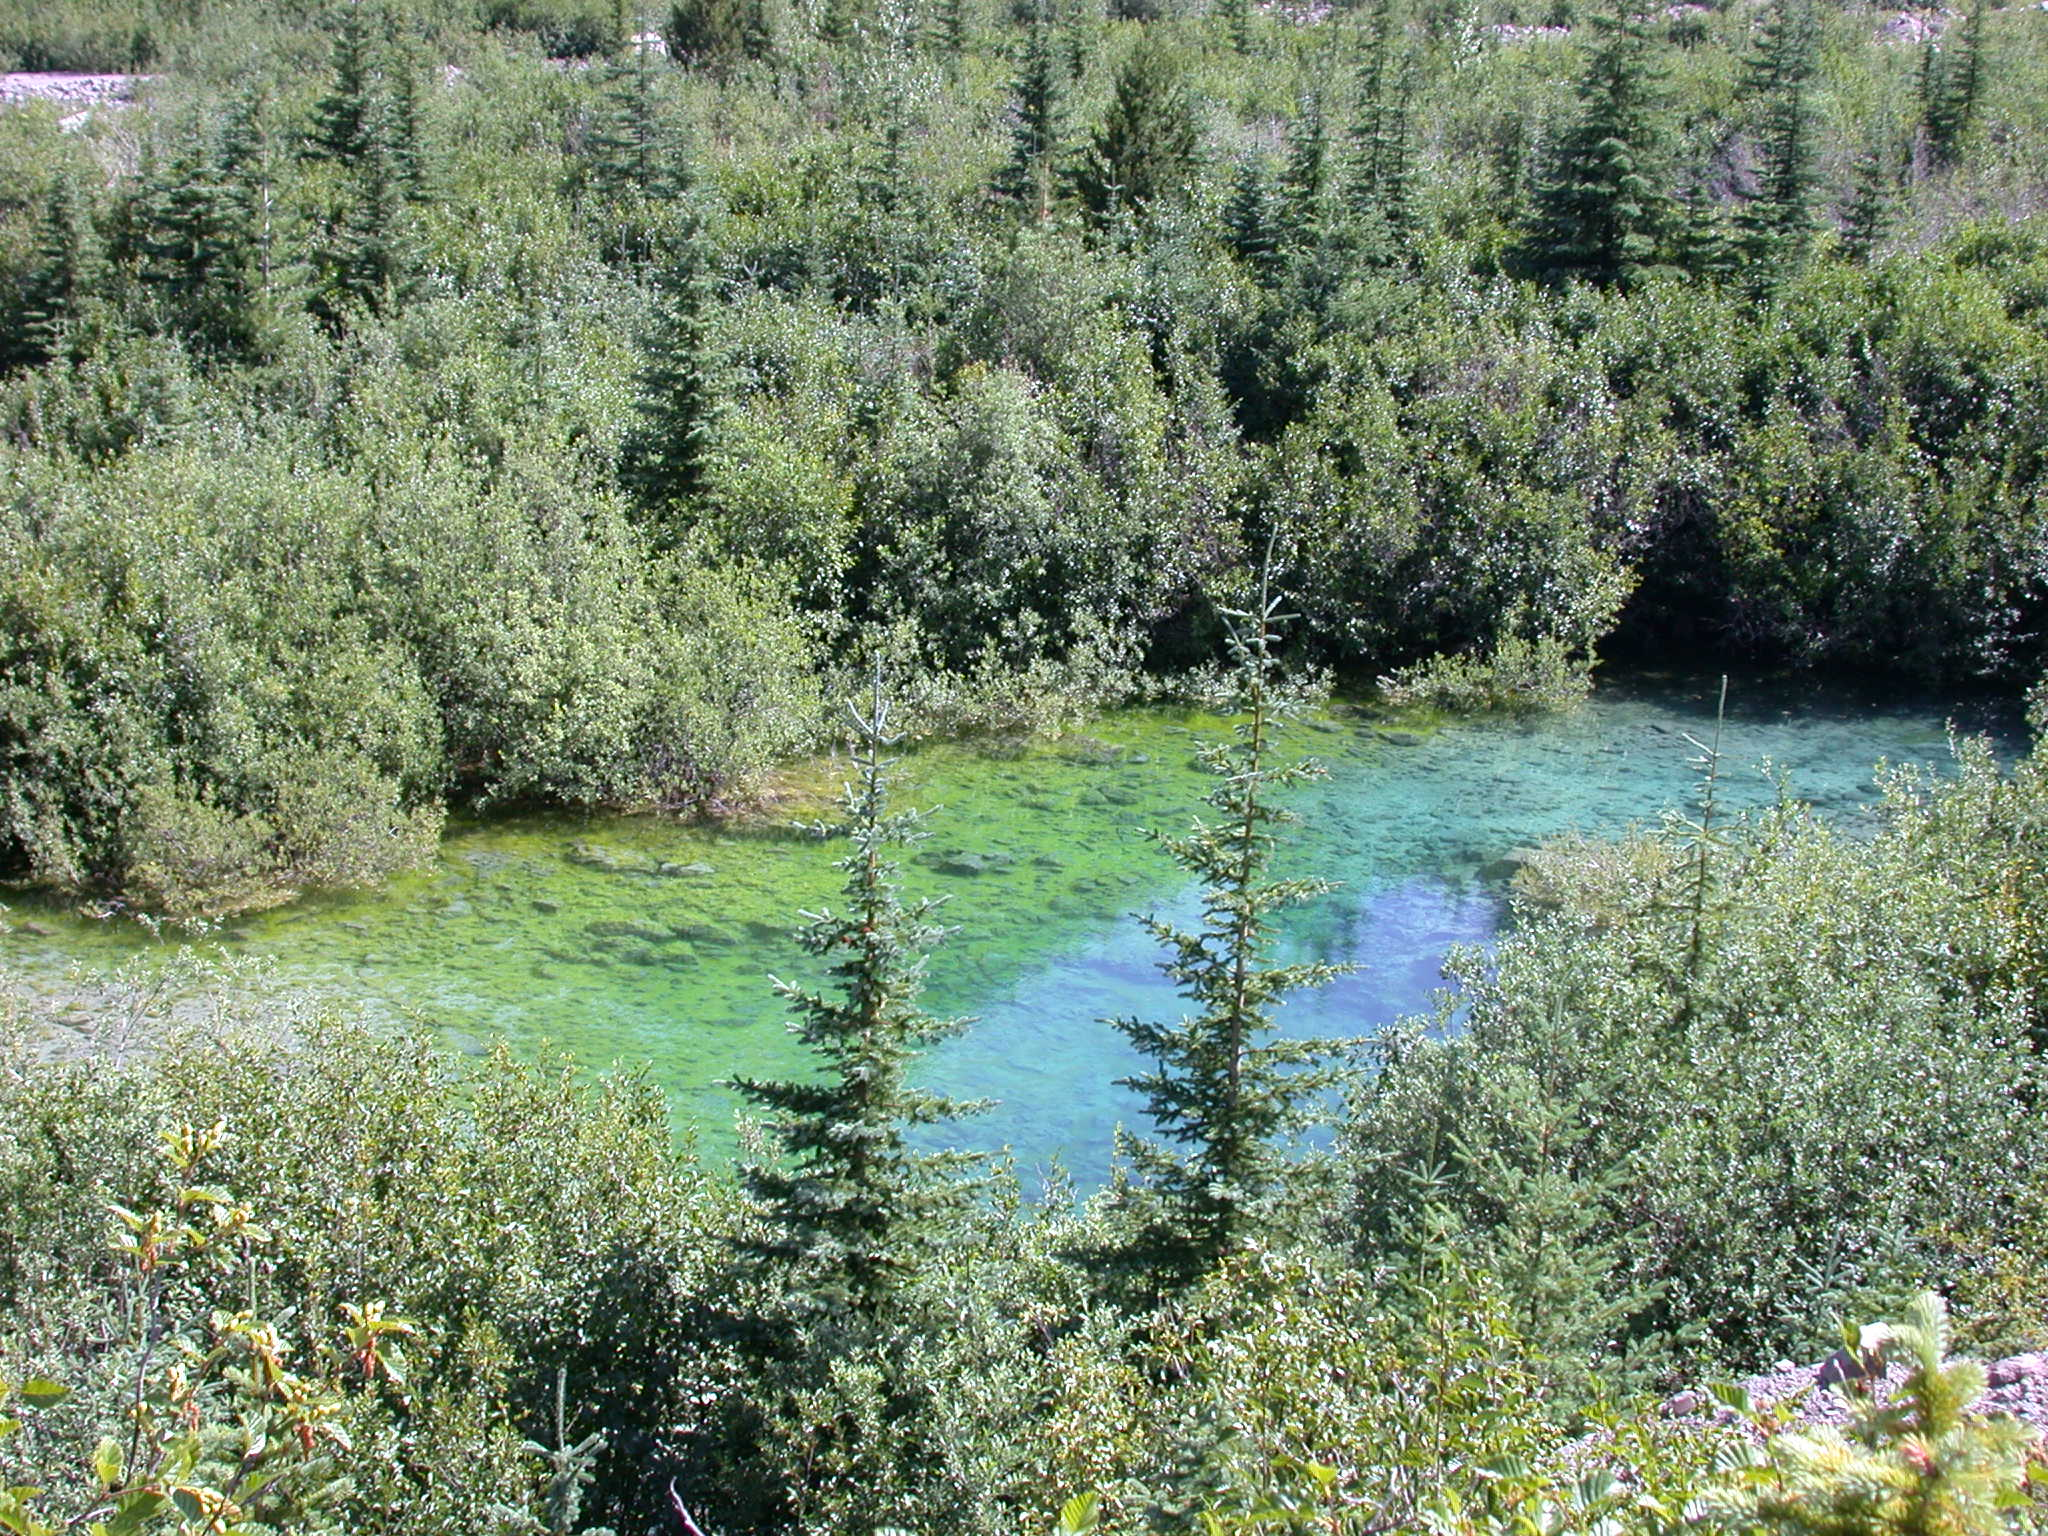 Green Glacial Pond in Glacier Valley of Mount Rainier